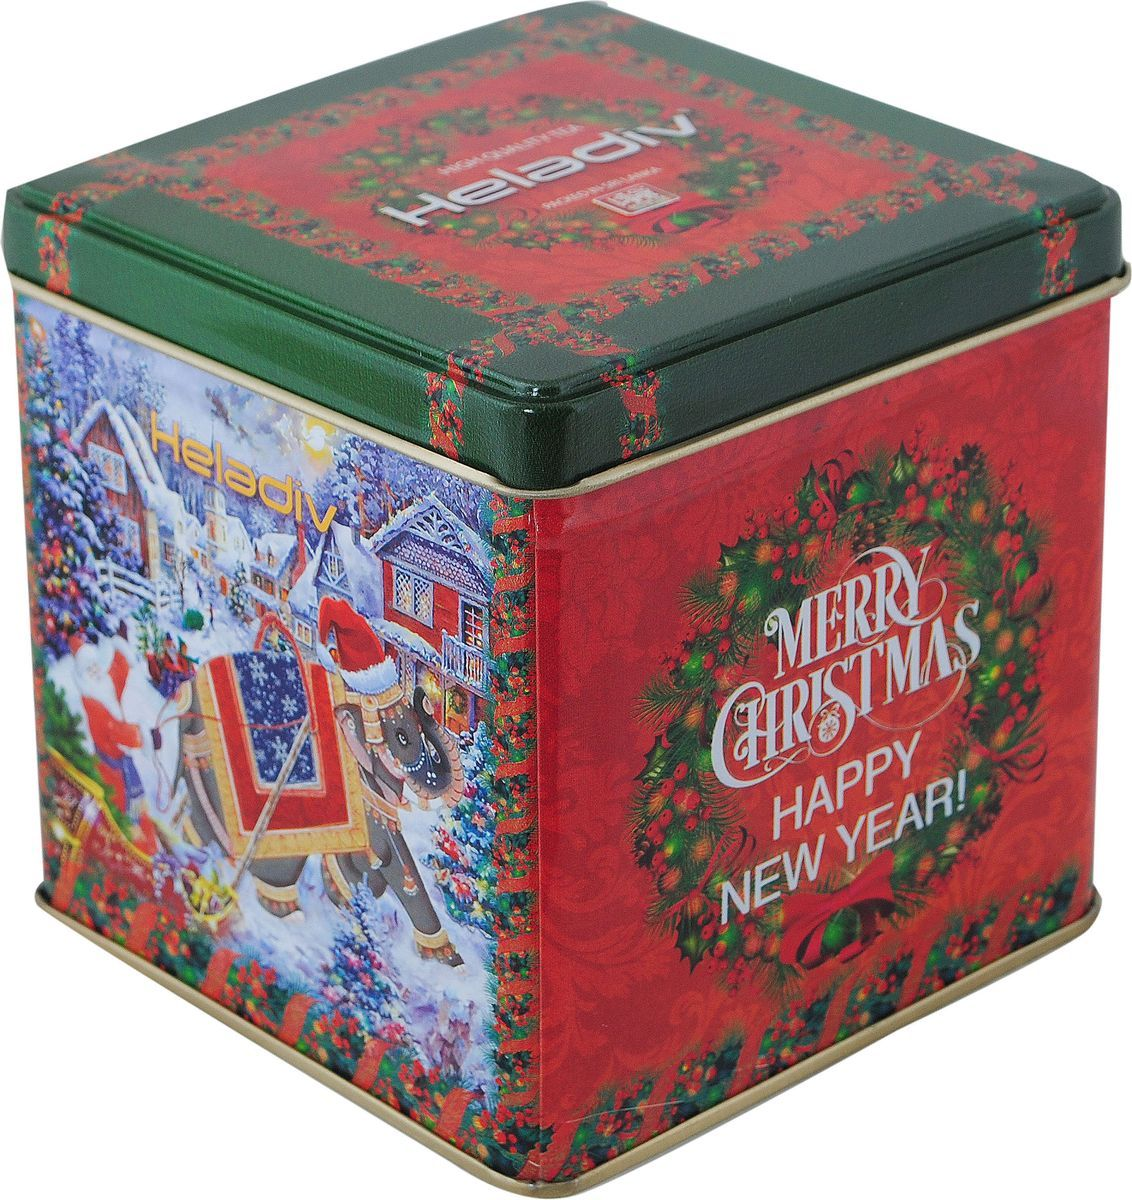 Heladiv Winter Elephant Opa Tin черный чай, 250 г ур ала чай черный крупнолистовой 85 г